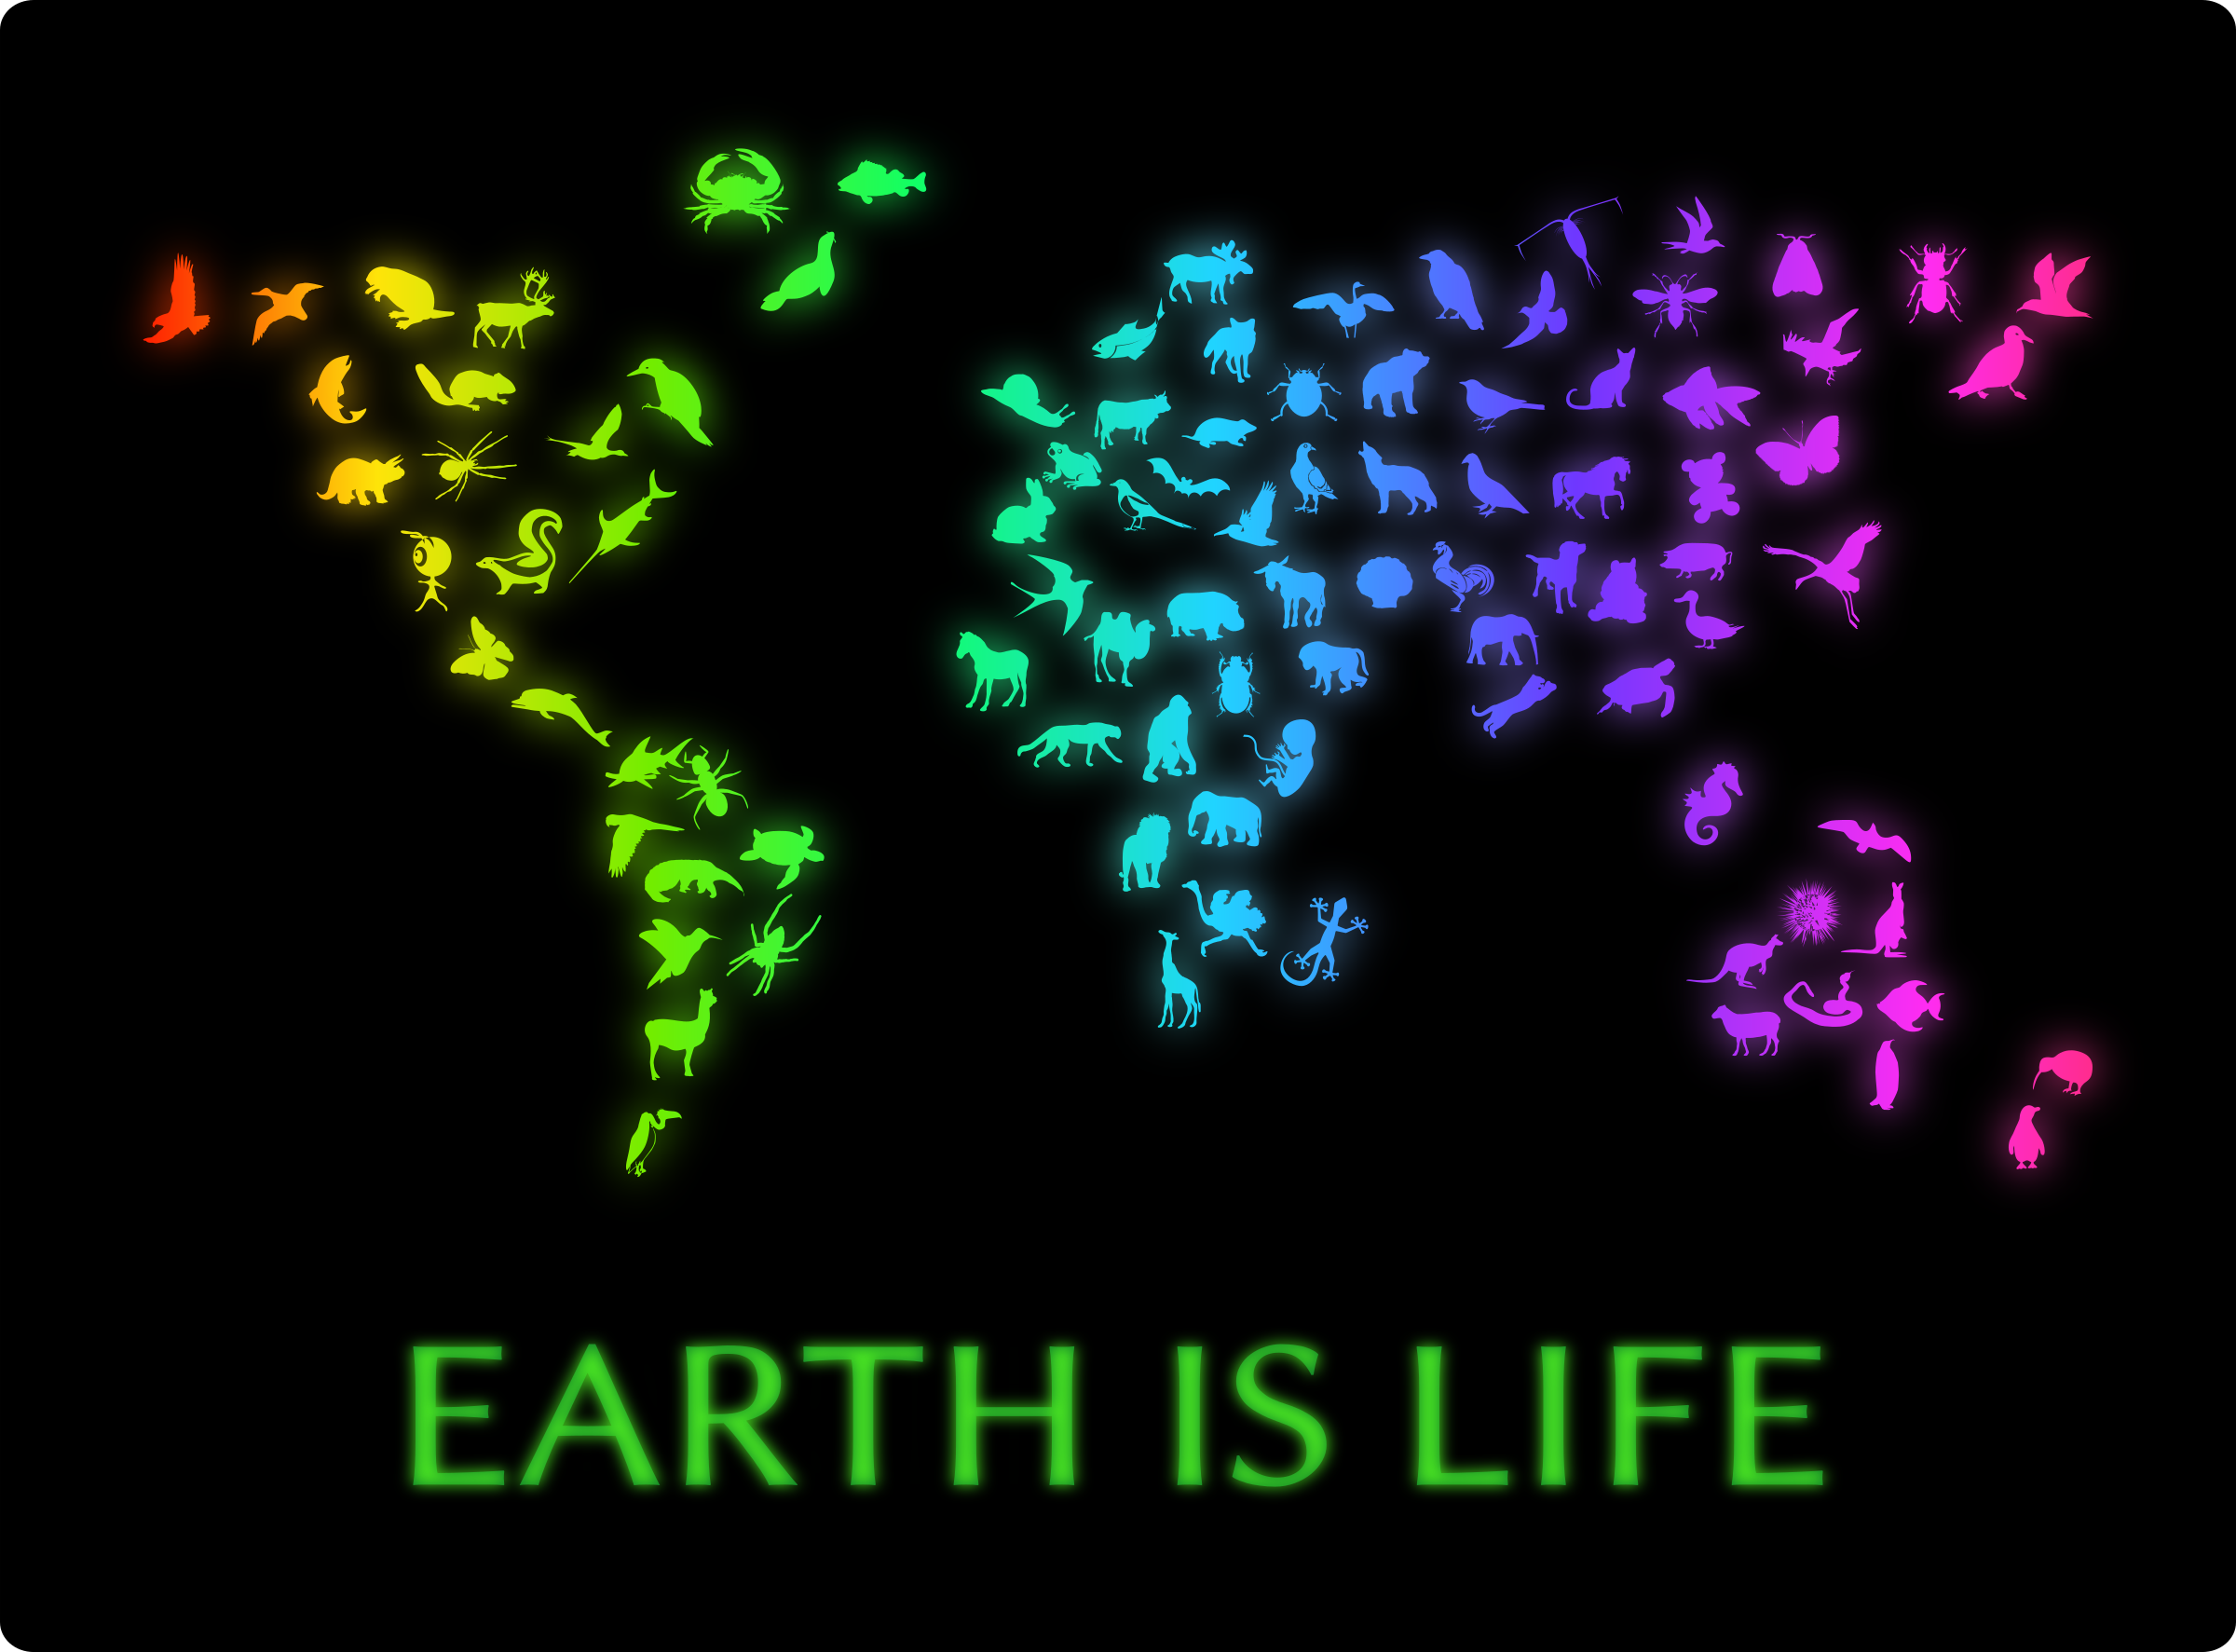 Earth Is Life by Moini